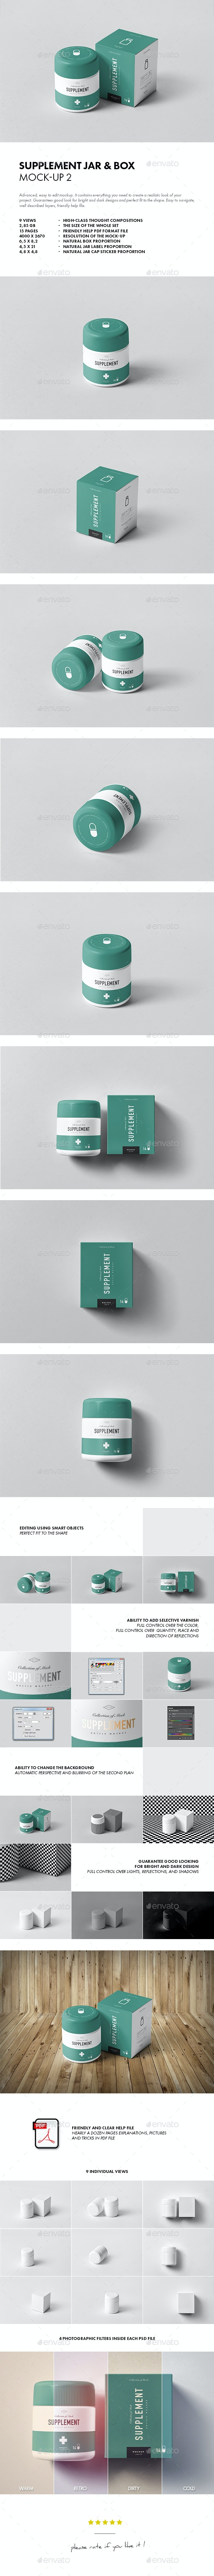 Supplement Jar & Box Mock-up 2 - Miscellaneous Packaging